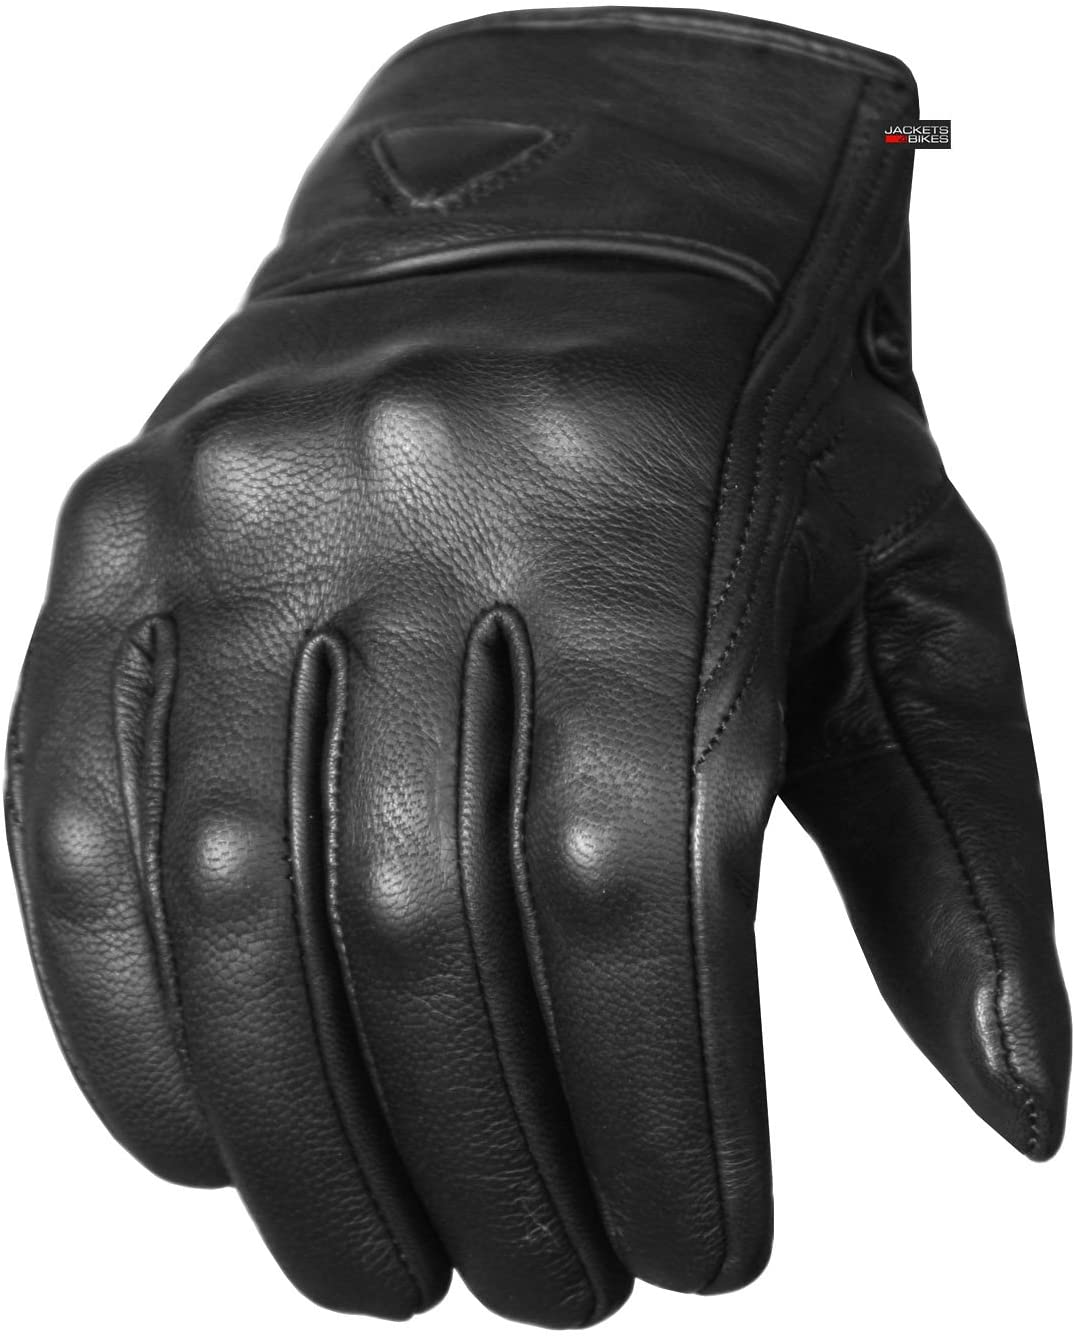 Jackets 4 Bikes Men's Leather Street Motorcycle Gloves